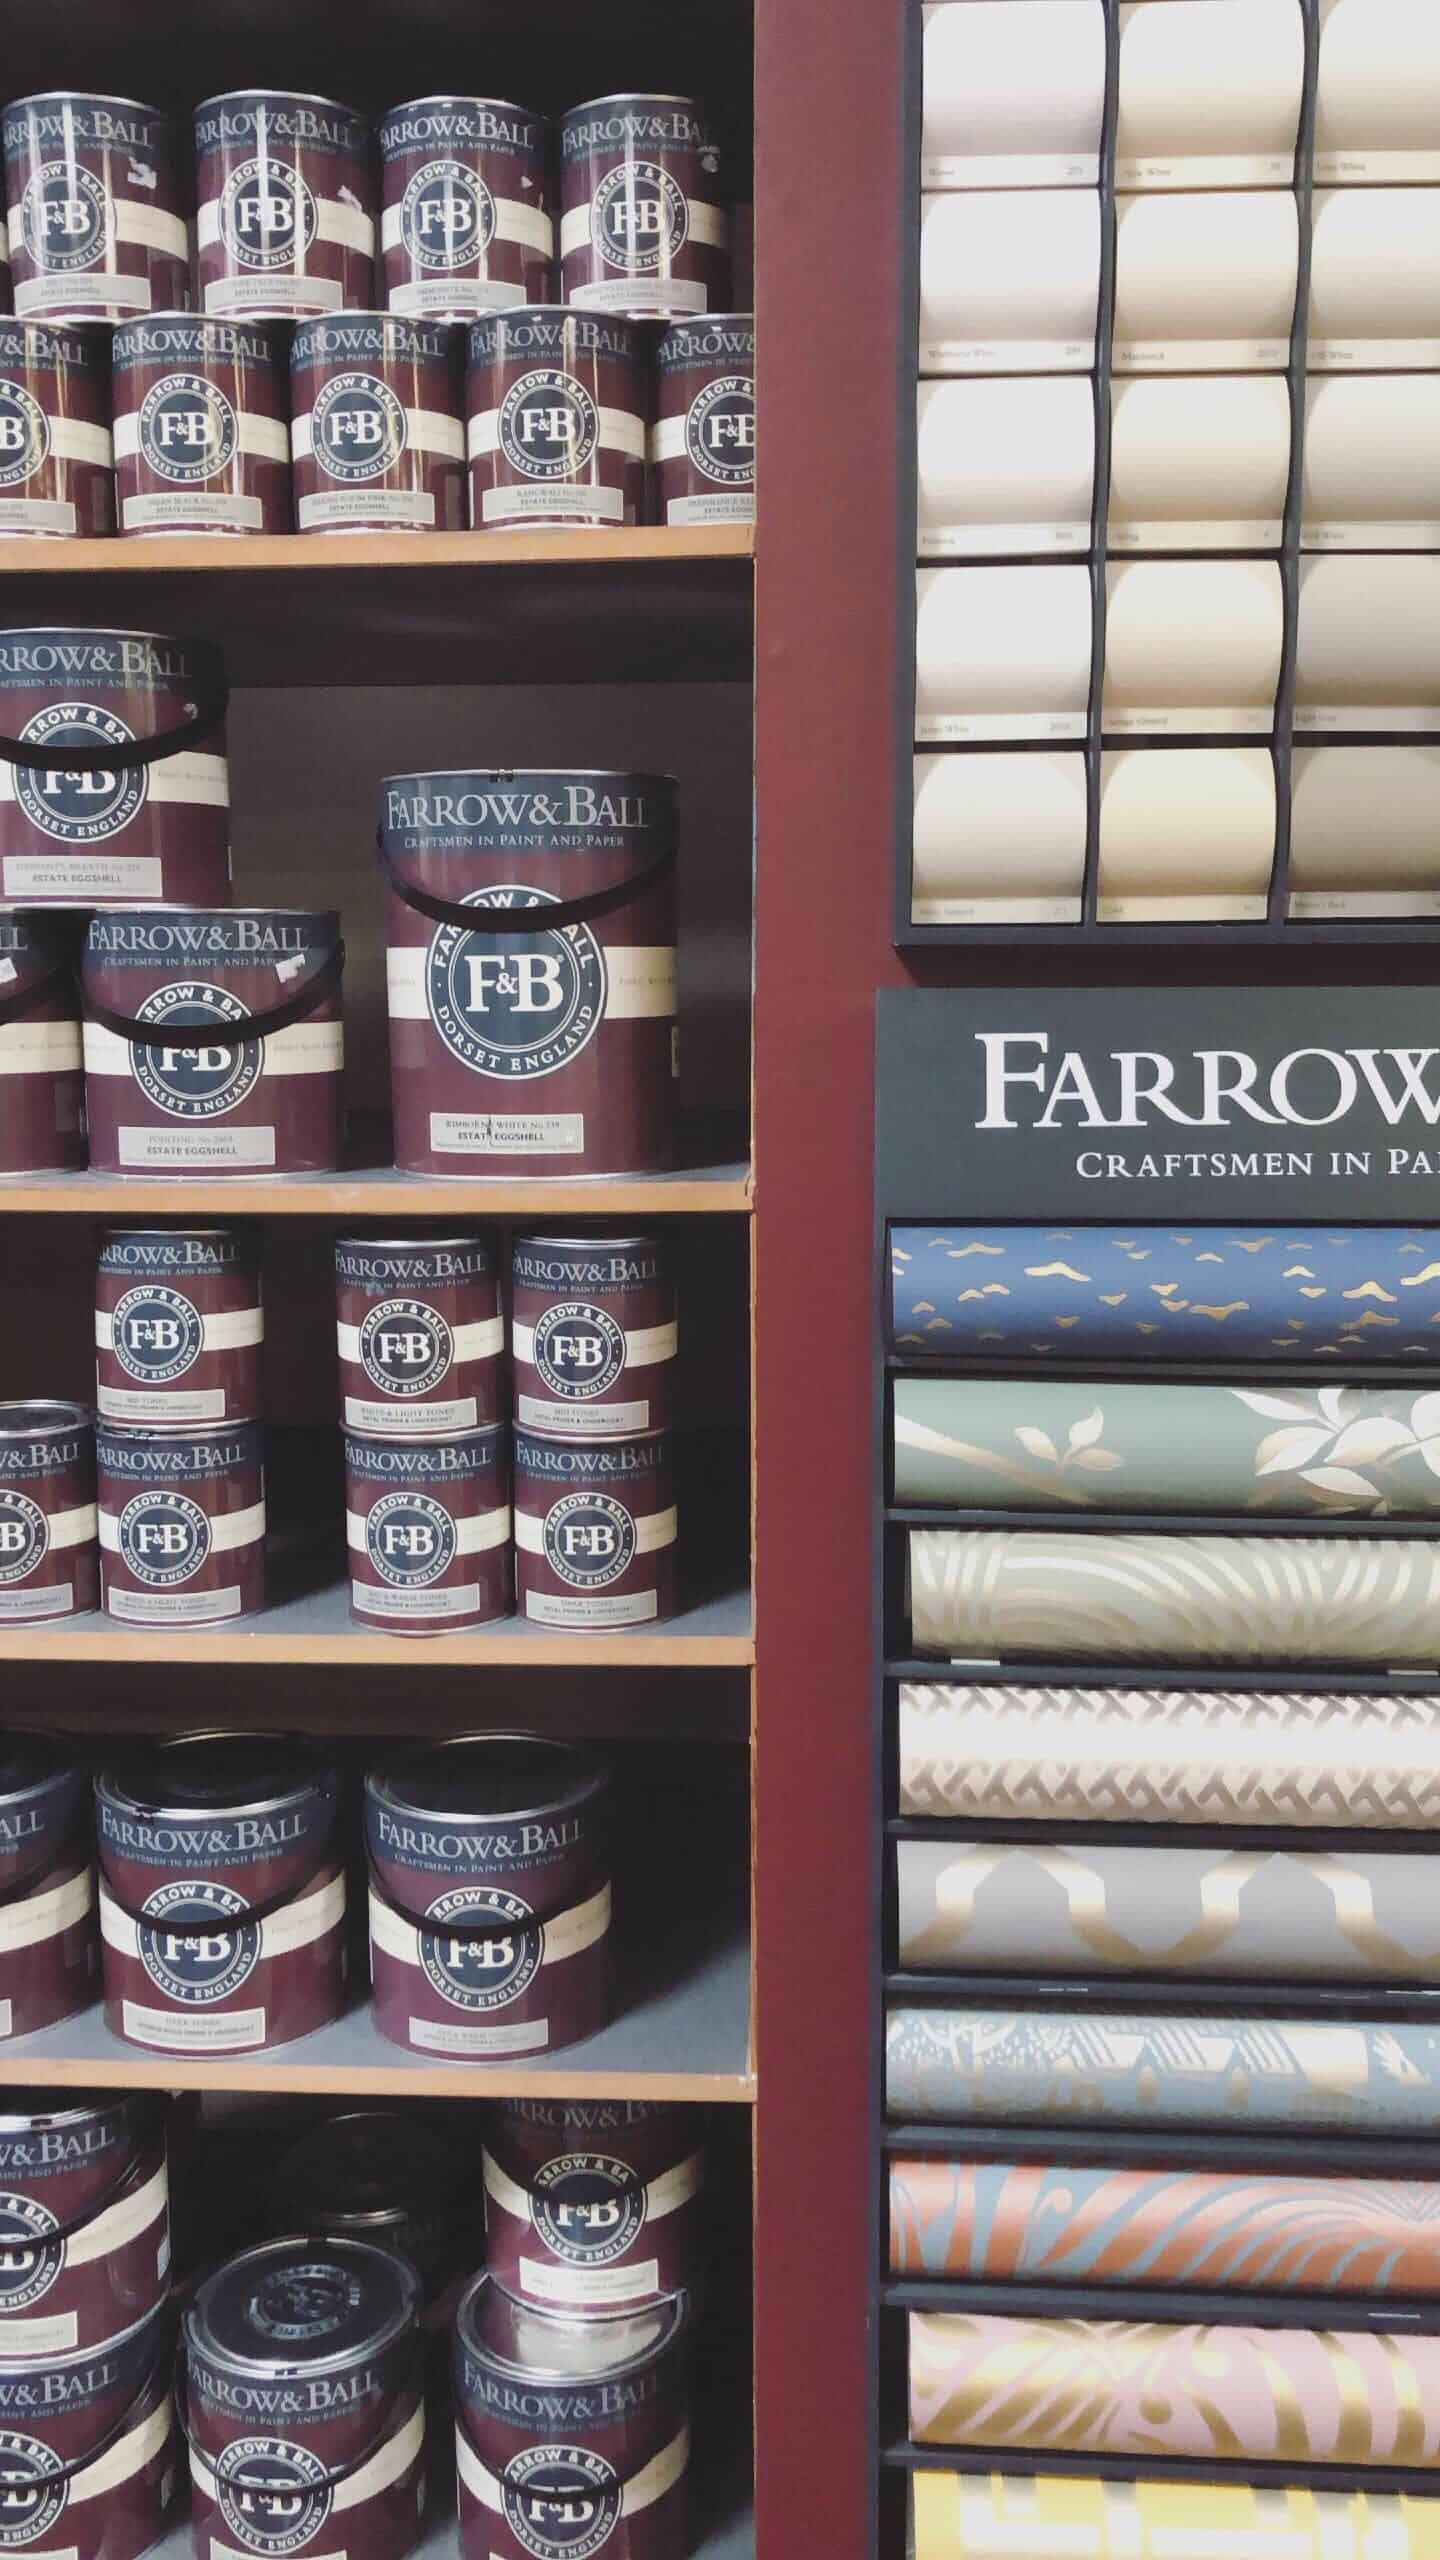 Finitions Farrow & Ball